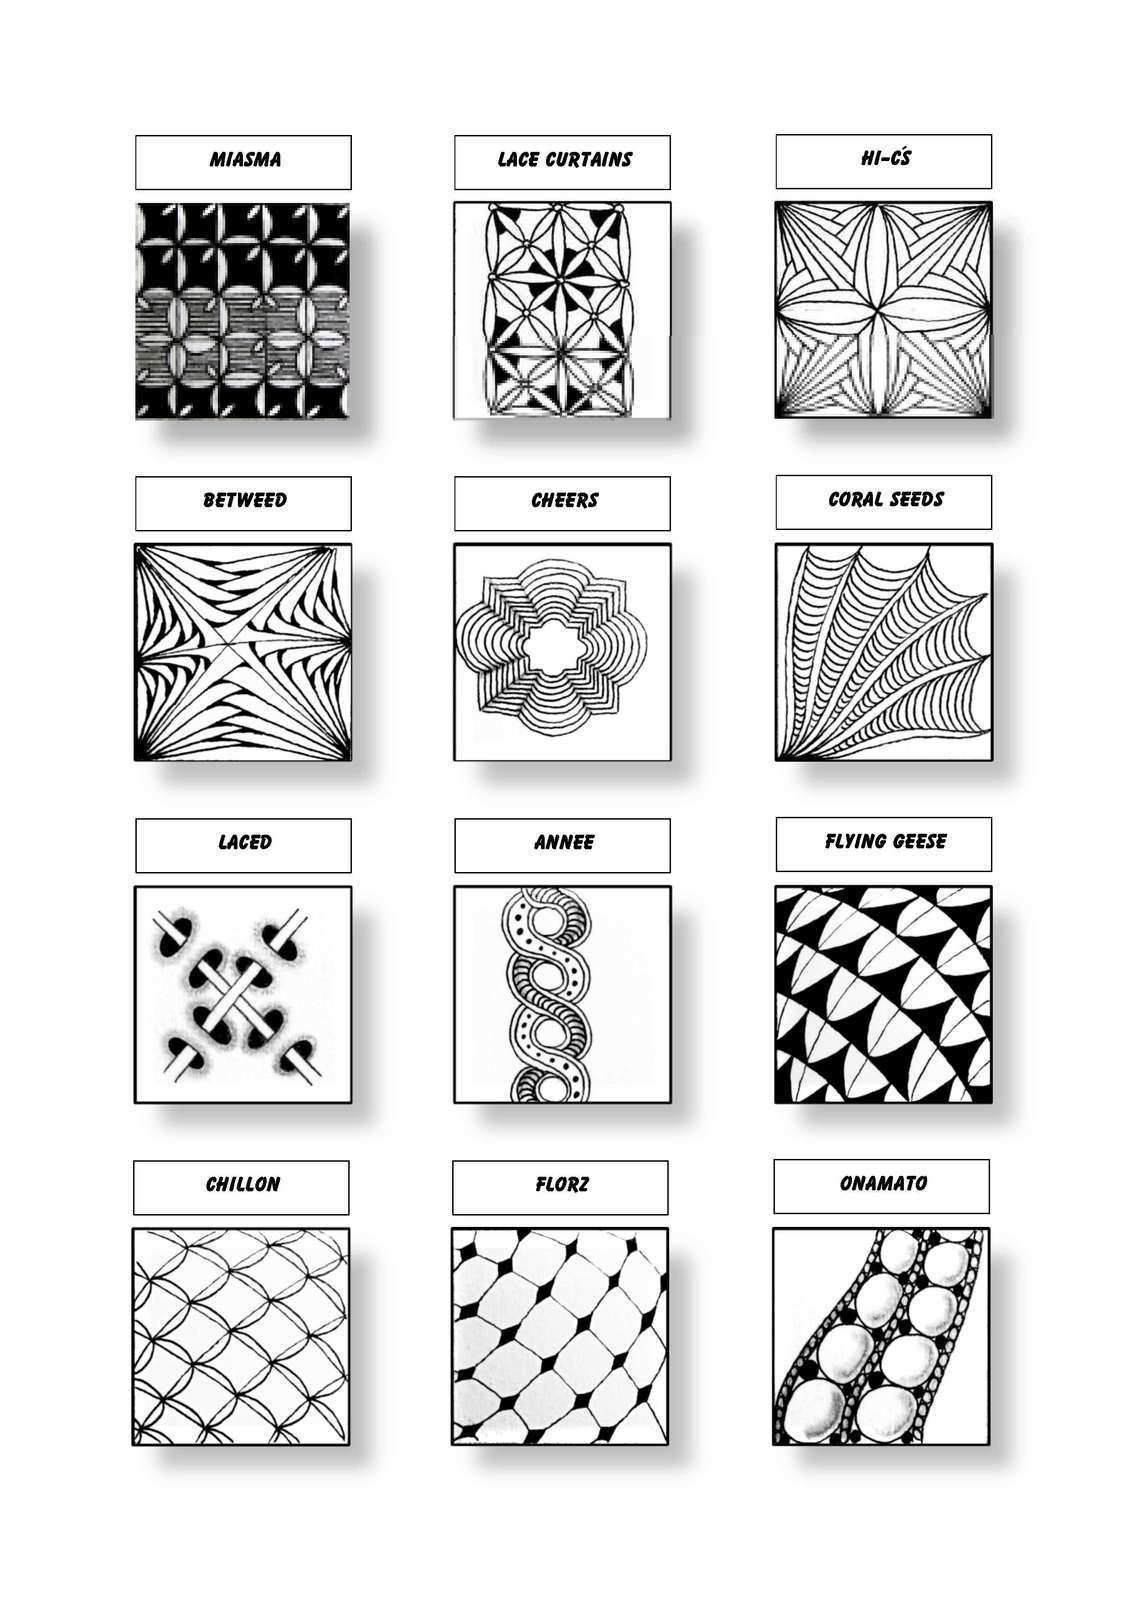 Cofono Czt Certified Zentangle Teacher Mustersammlung Zentangle Patterns Zentangle Zentangle Drawings